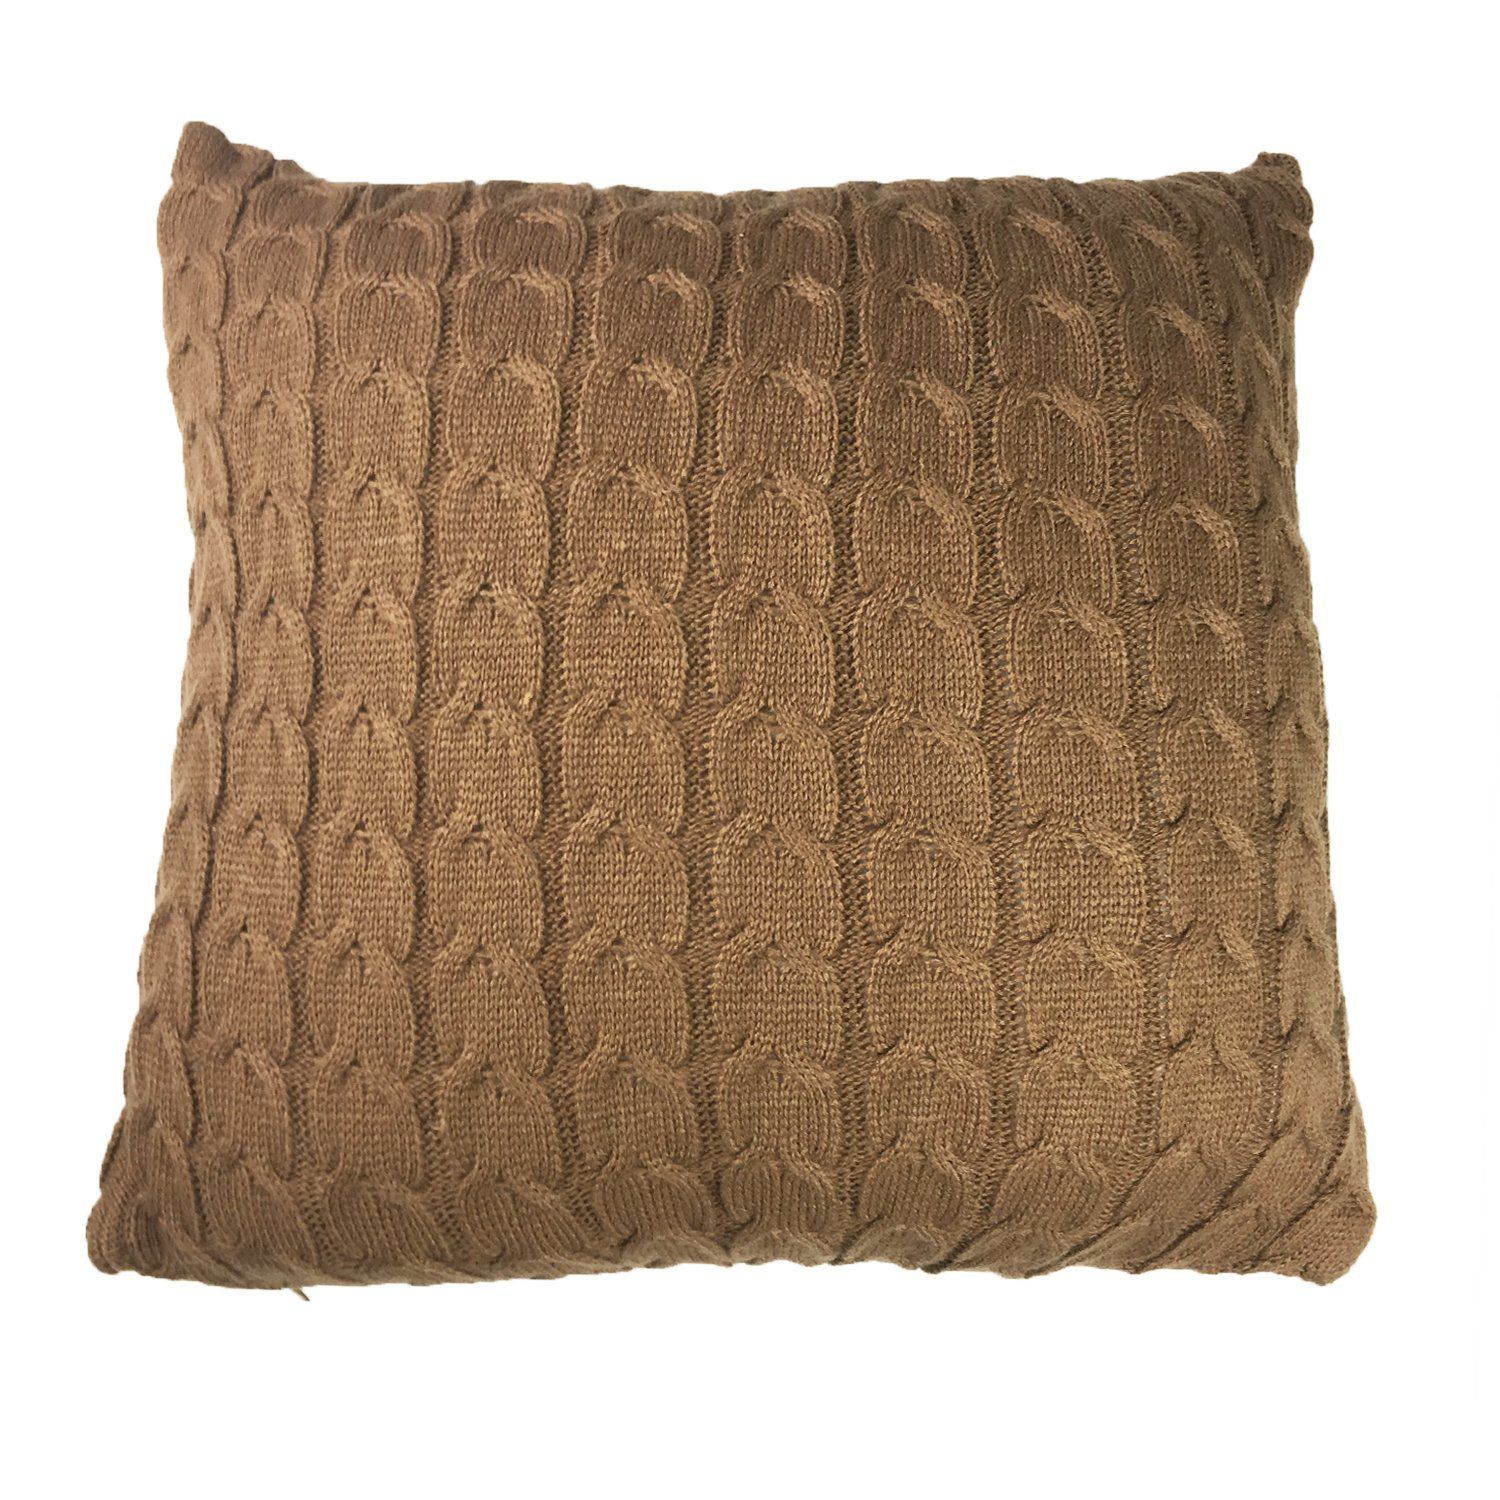 Sanifer doubleside cable knit decorative throw pillow cover for bed